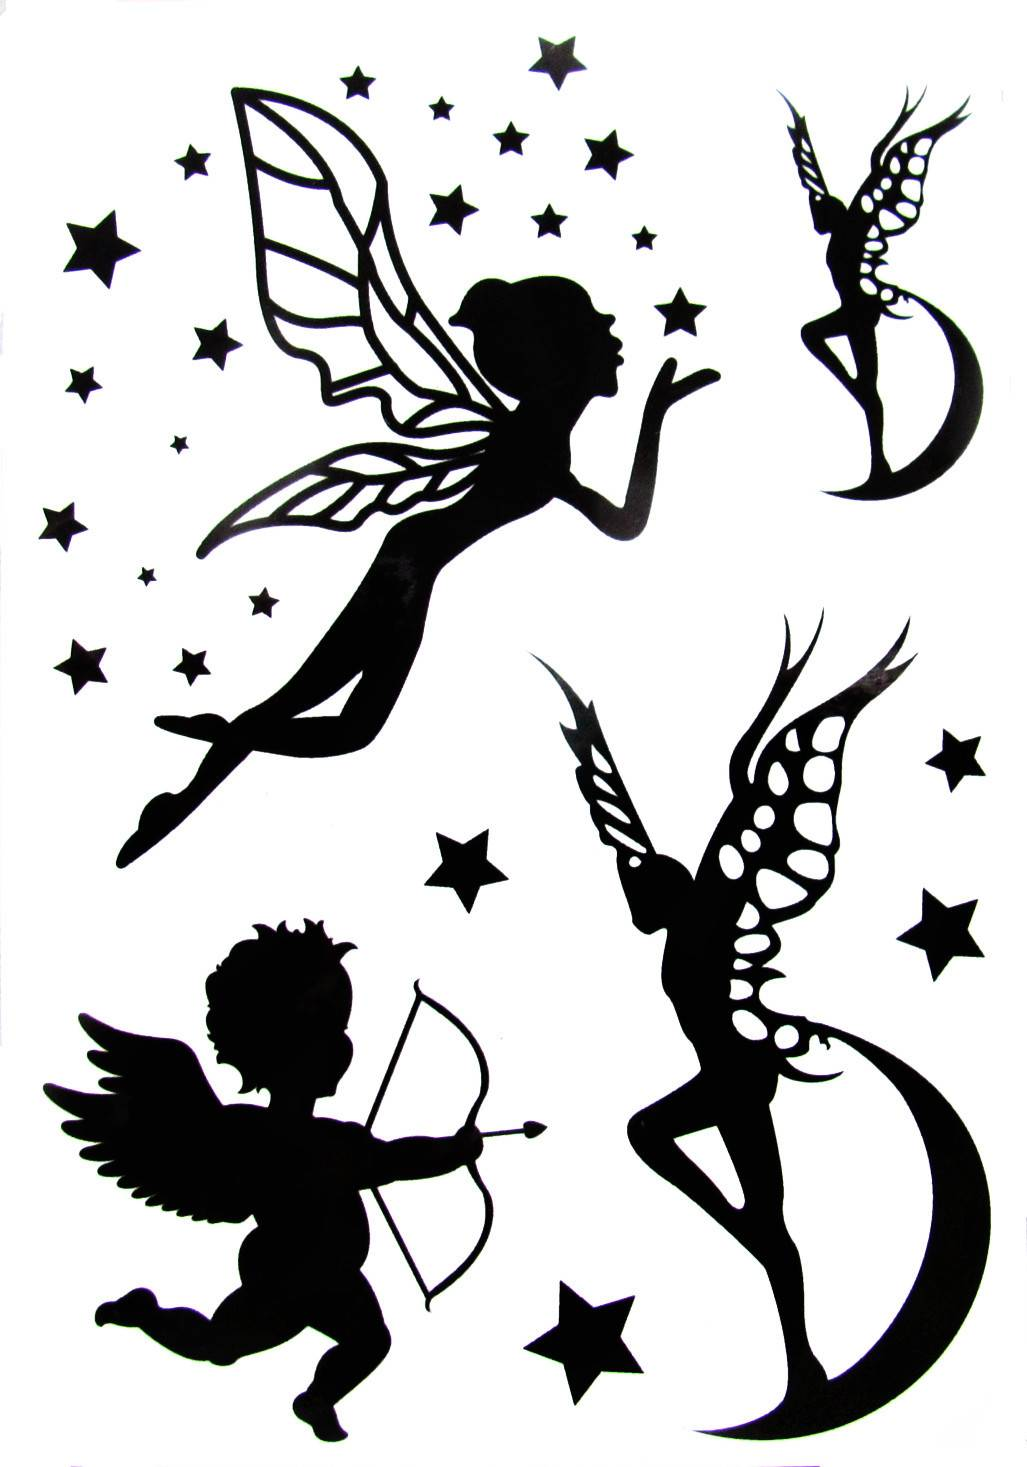 The angel design tattoo stickers for kids